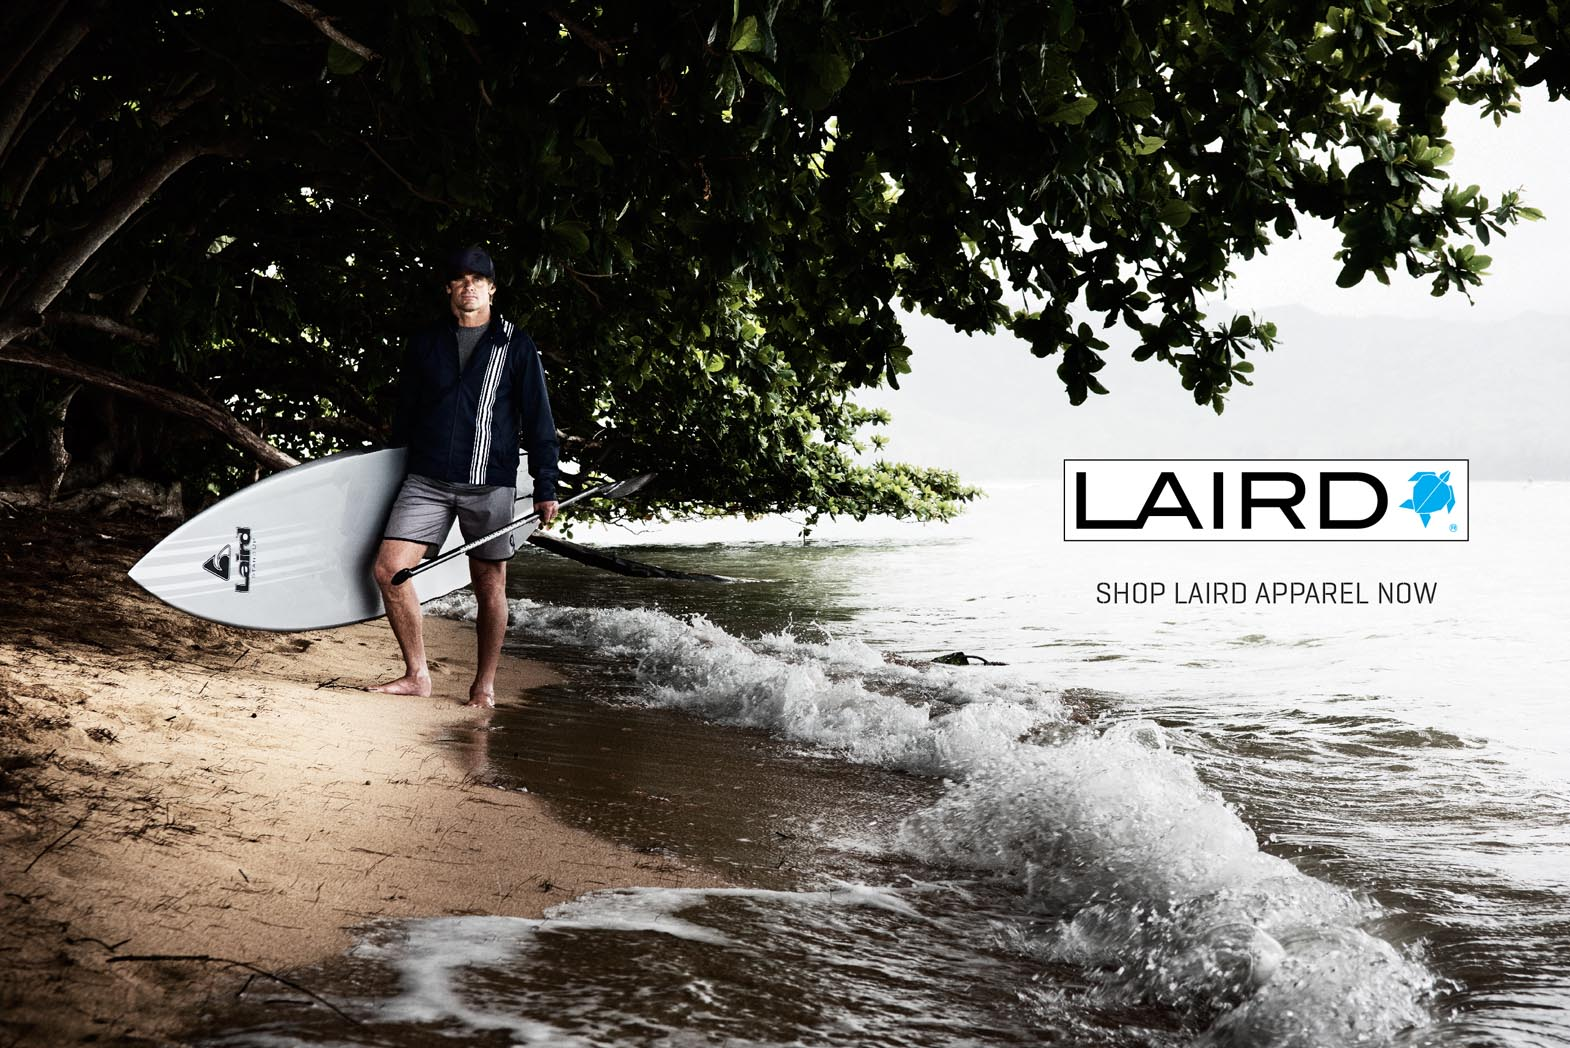 Laird-apparel_Ad